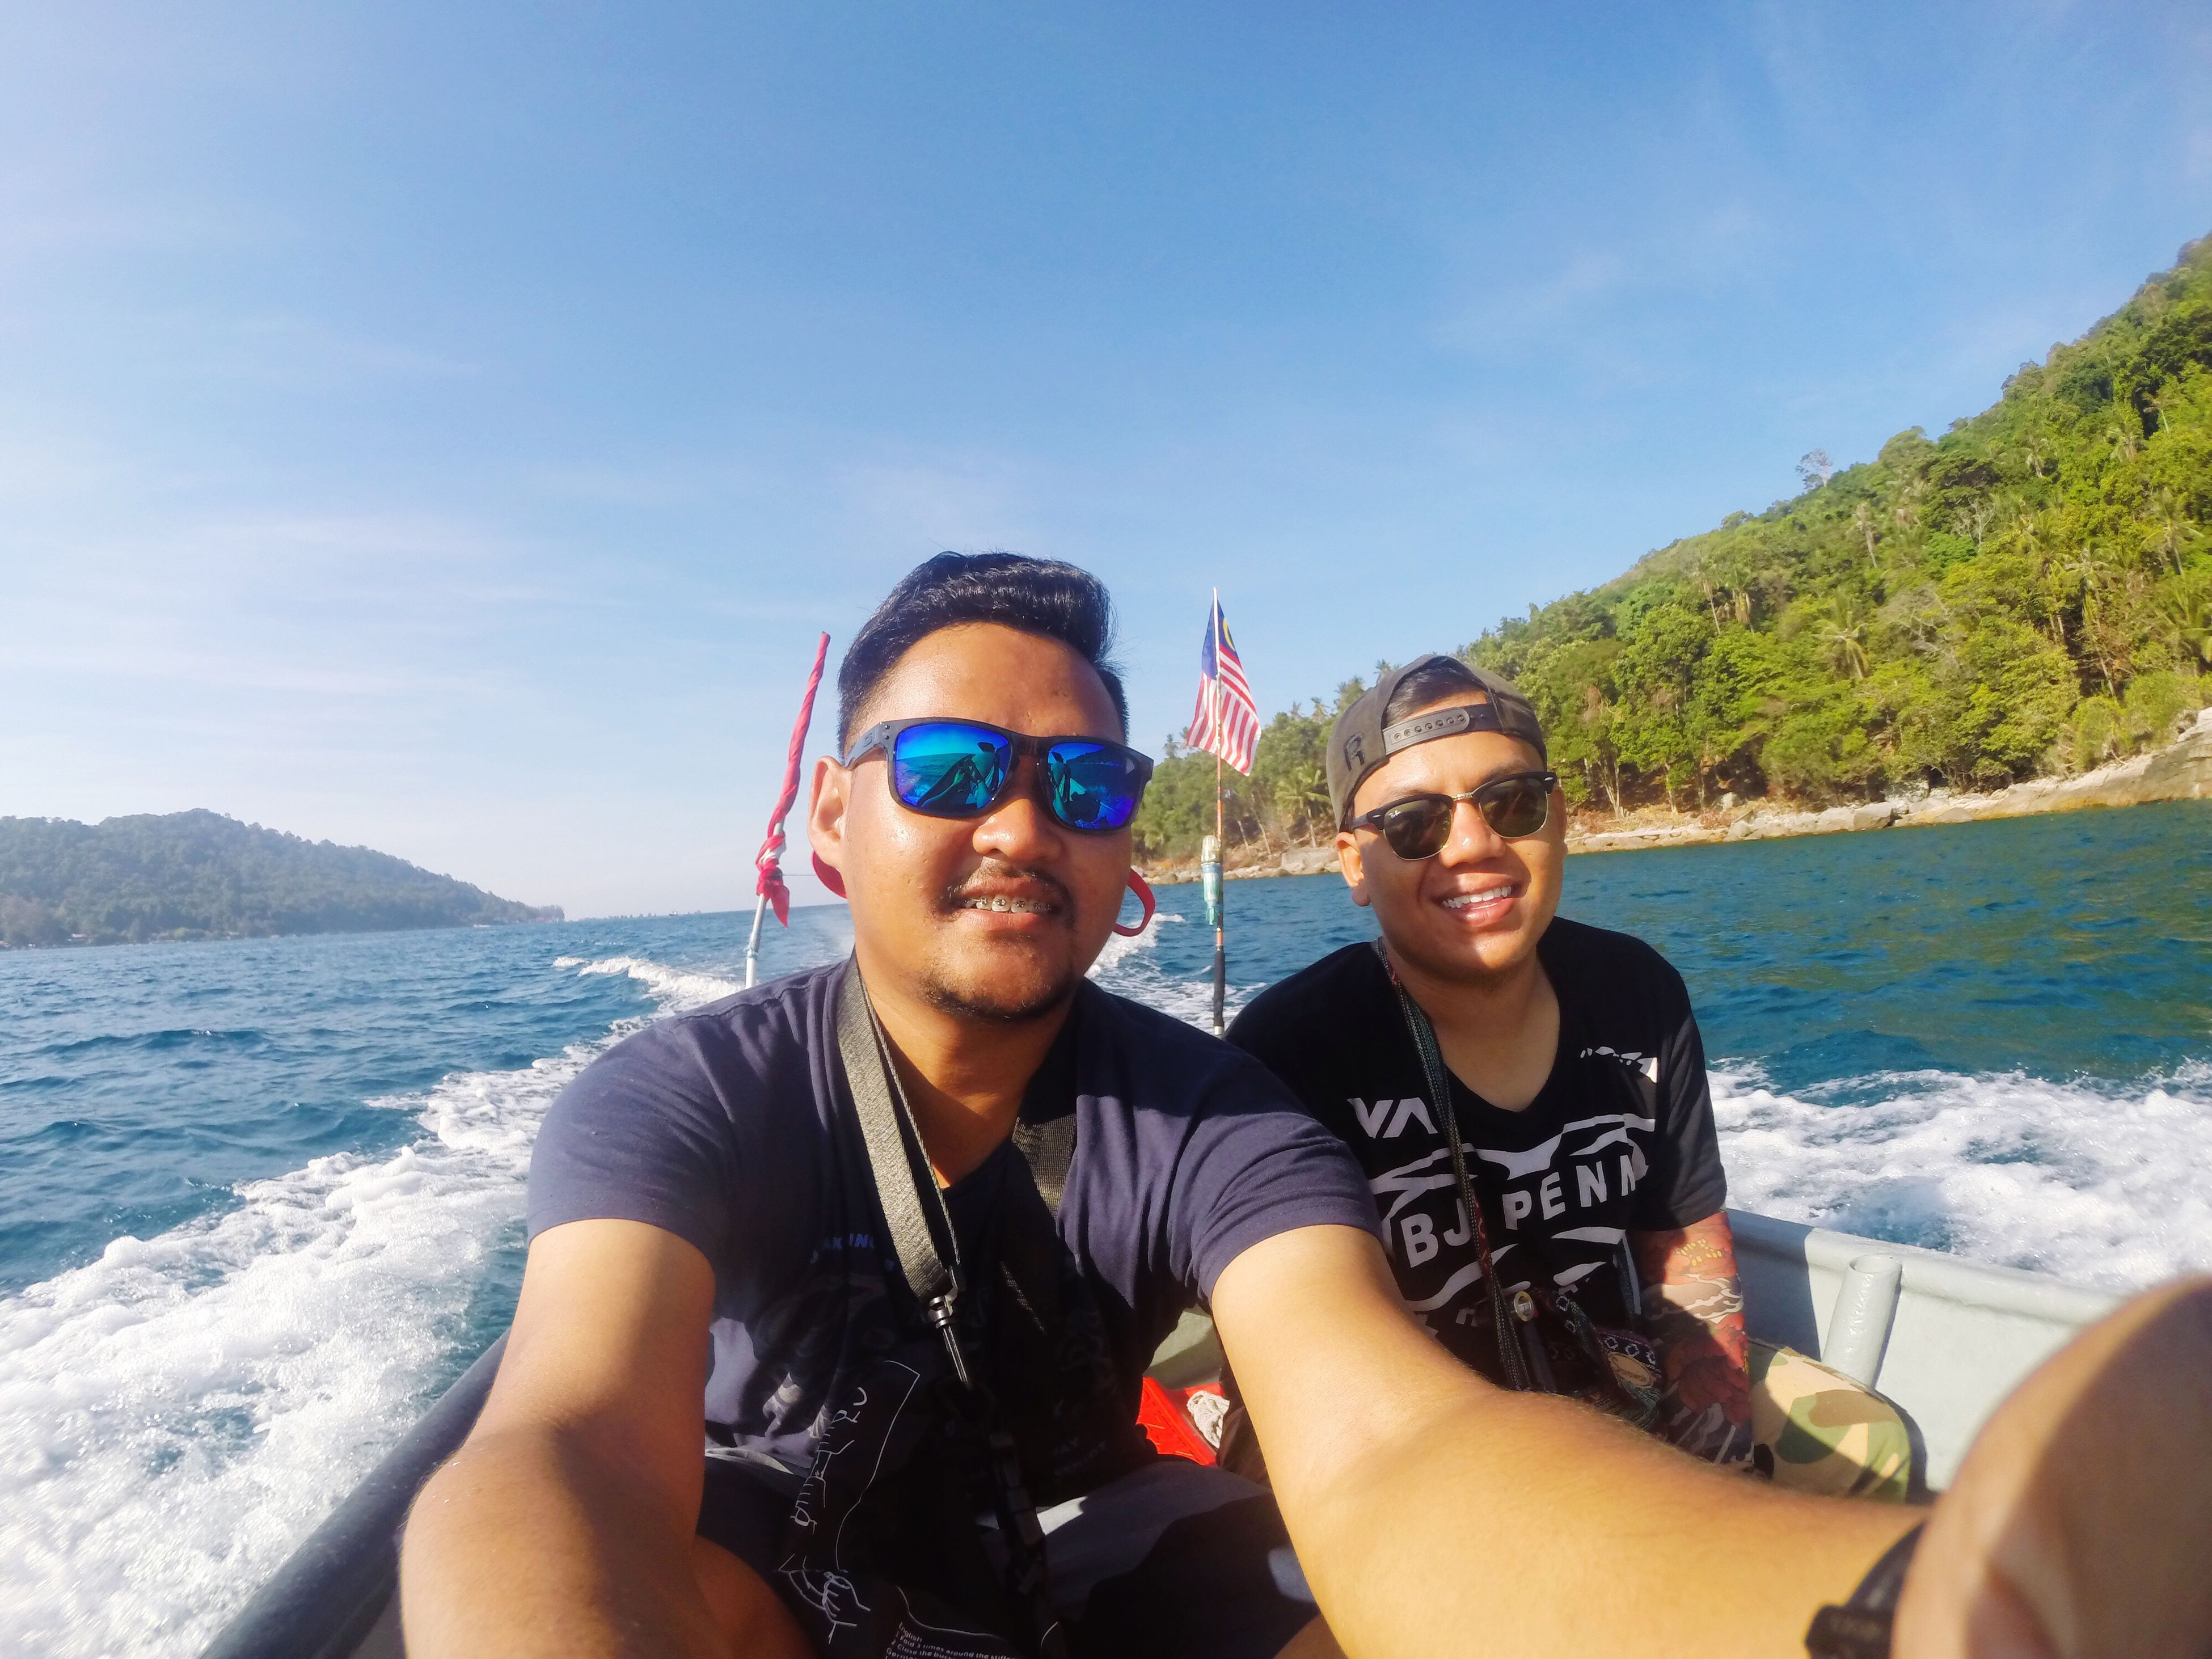 lifestyles, leisure activity, person, looking at camera, young adult, portrait, water, young men, vacations, smiling, sea, front view, sunglasses, happiness, togetherness, enjoyment